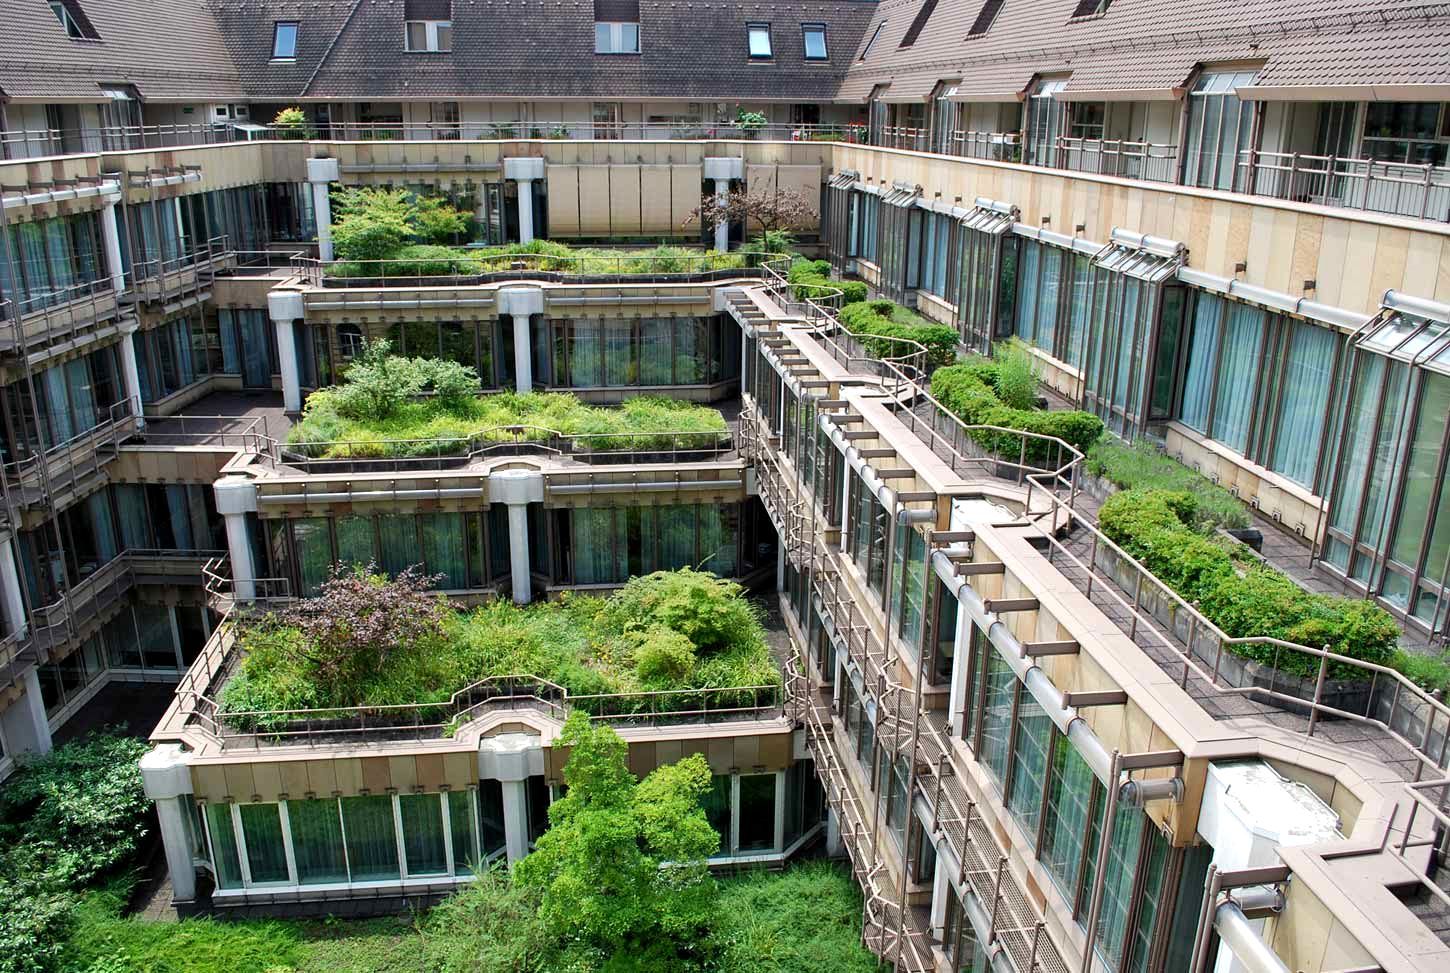 Insurance Financial Company Stuttgart Fbb Green Roof Of